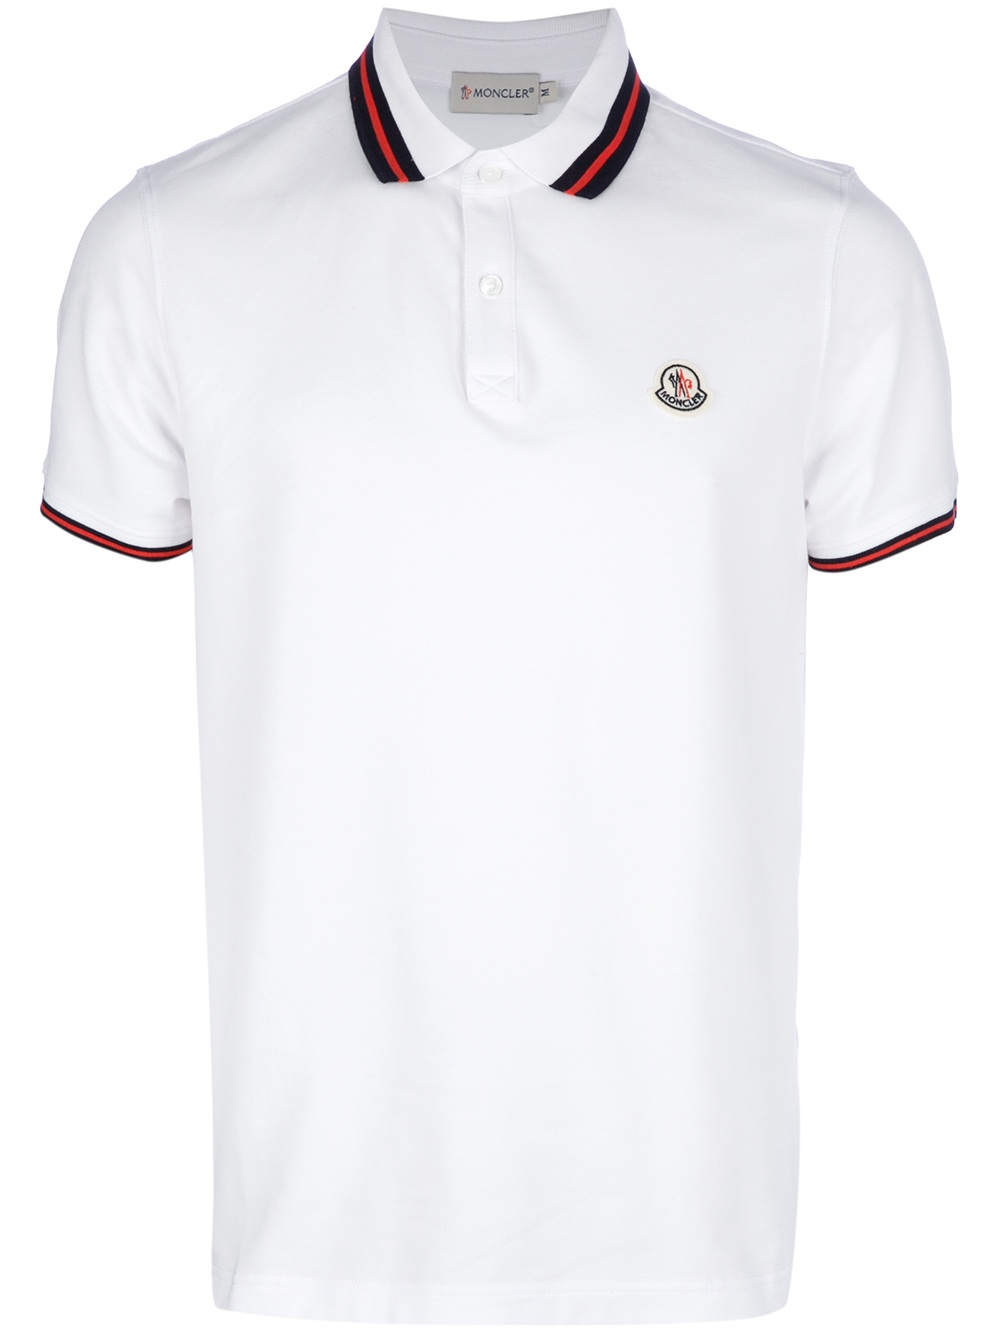 8f35ea1b Moncler Classic Polo Shirt in White for Men - Lyst